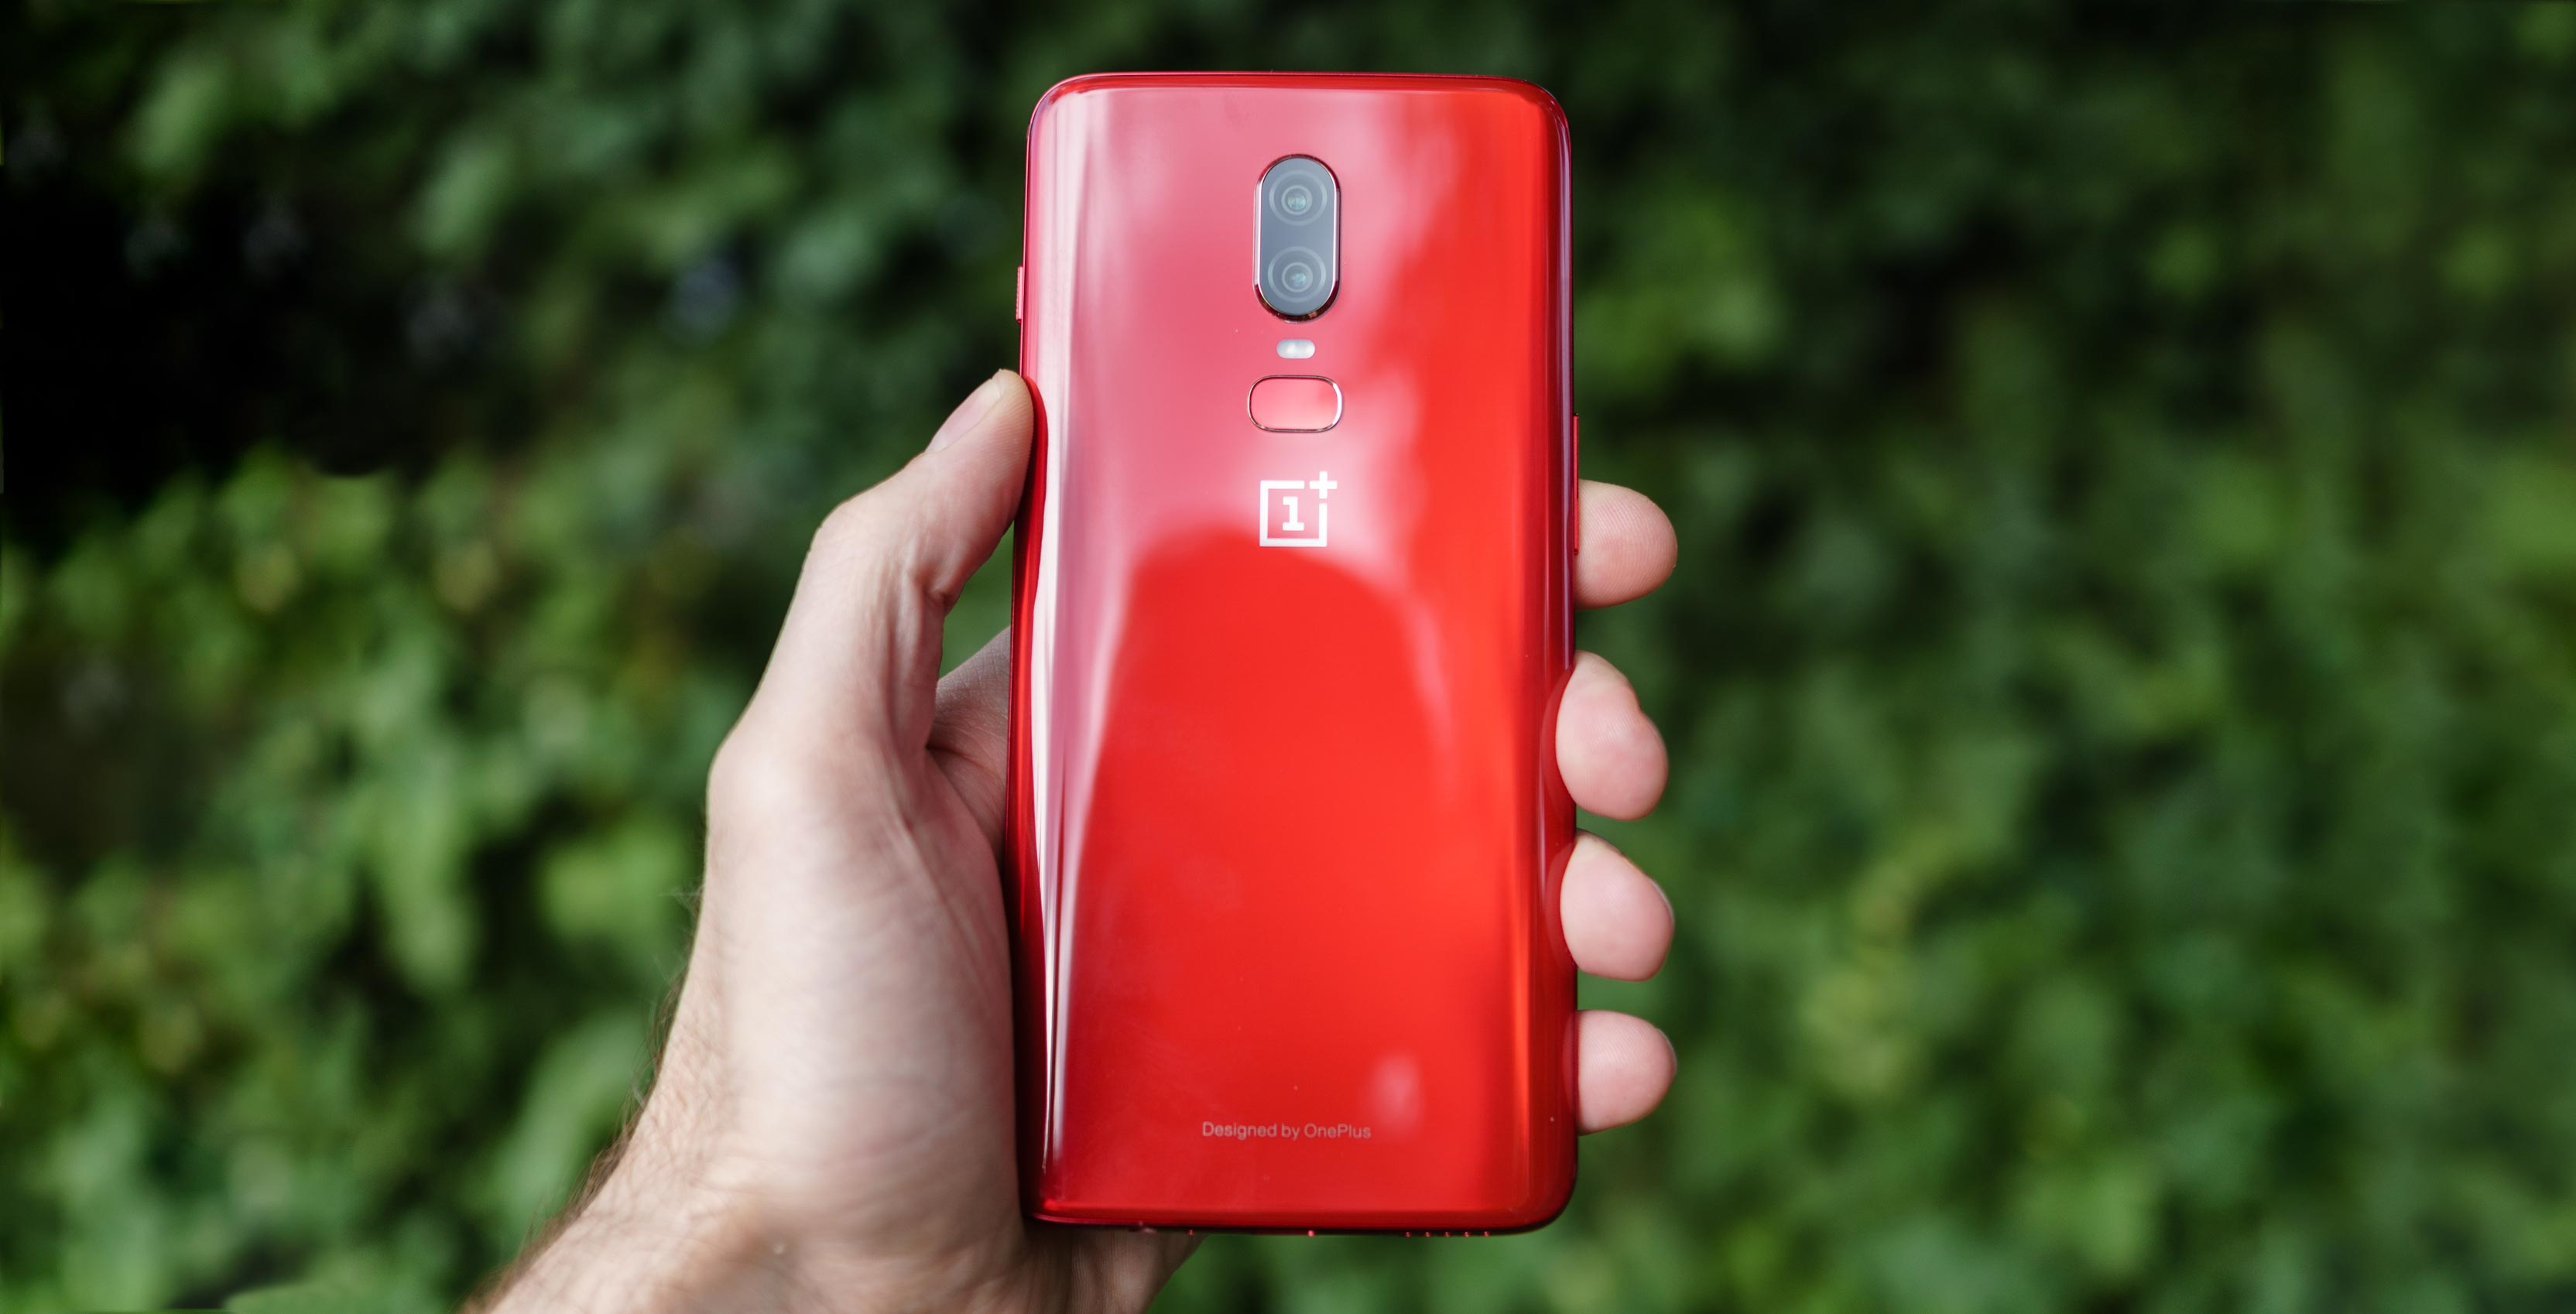 OnePlus 6T event now happening October 29th because of Apple announcement